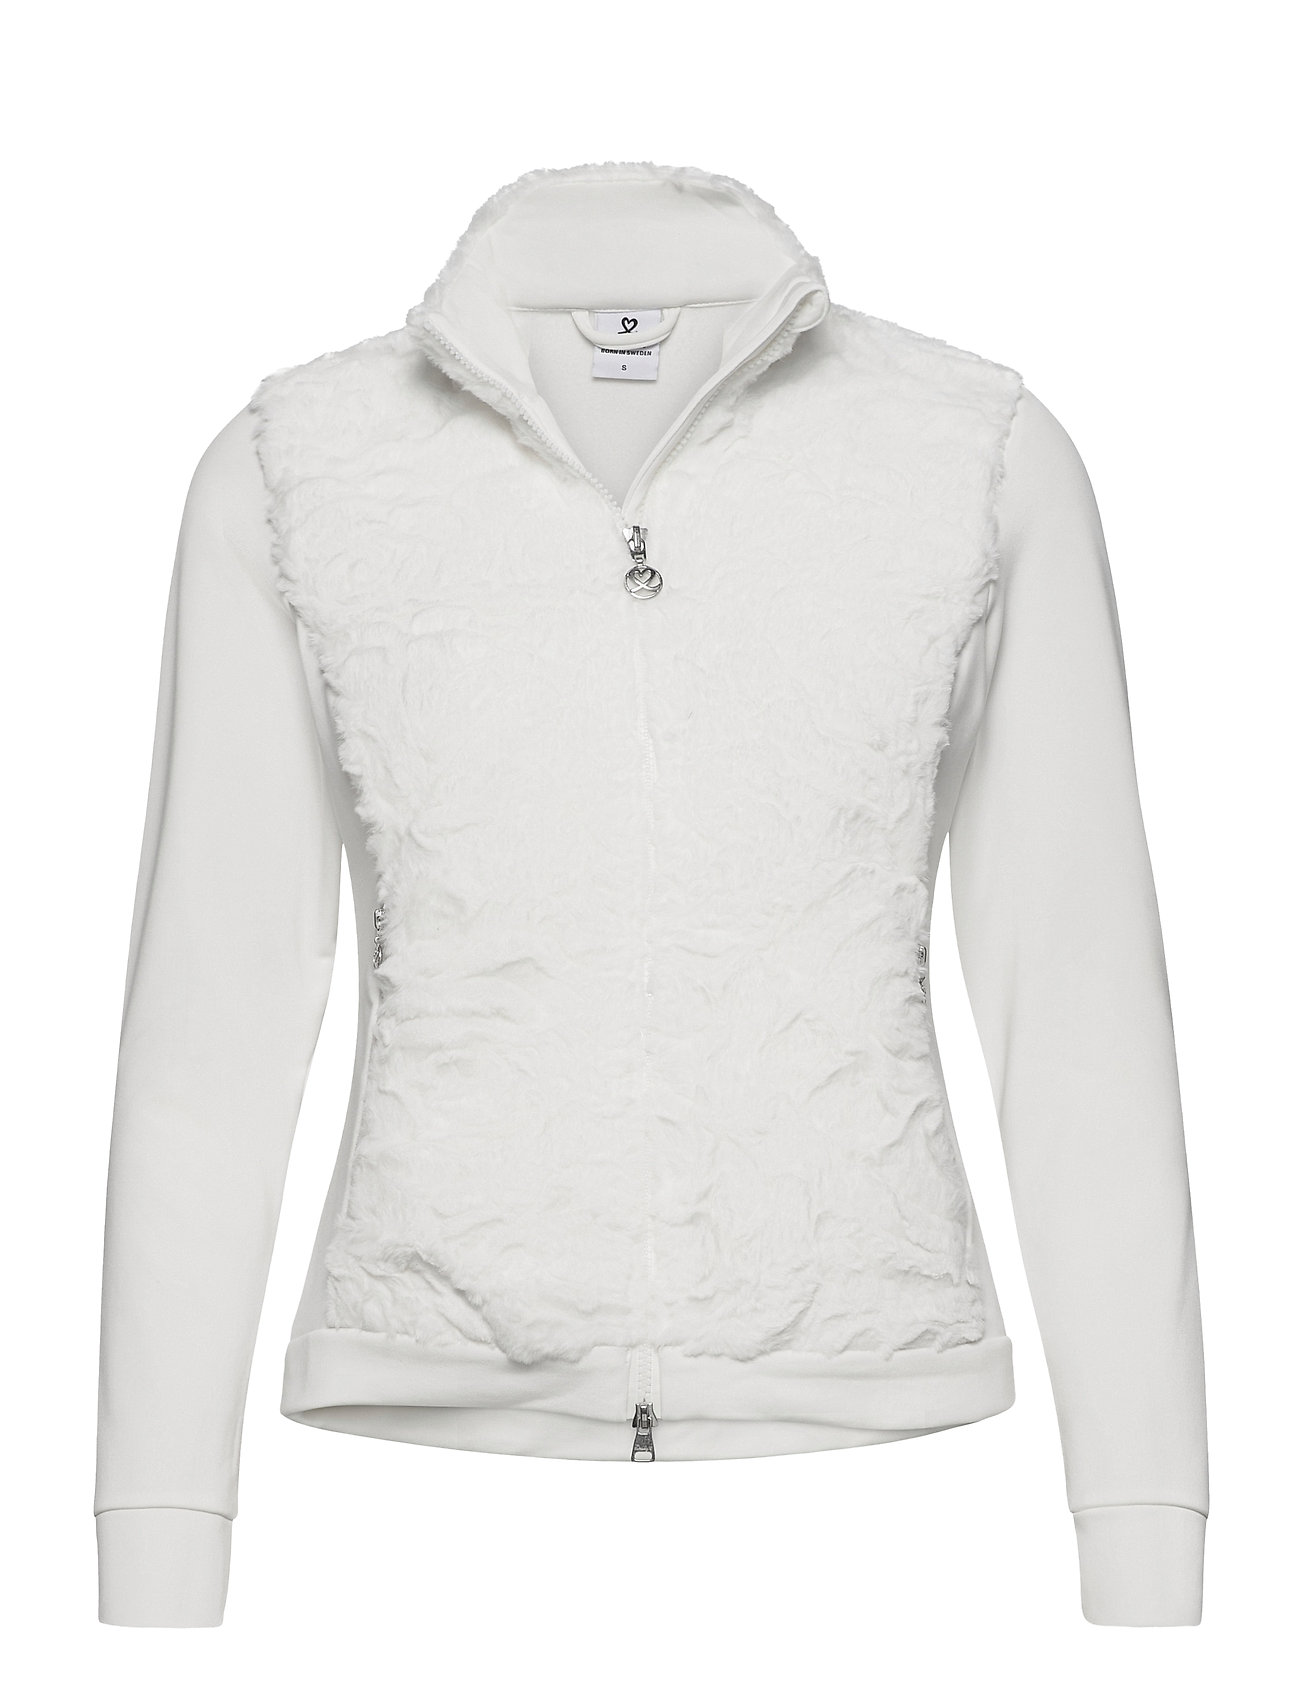 Image of Frances Jacket Outerwear Sport Jackets Hvid Daily Sports (3448365451)